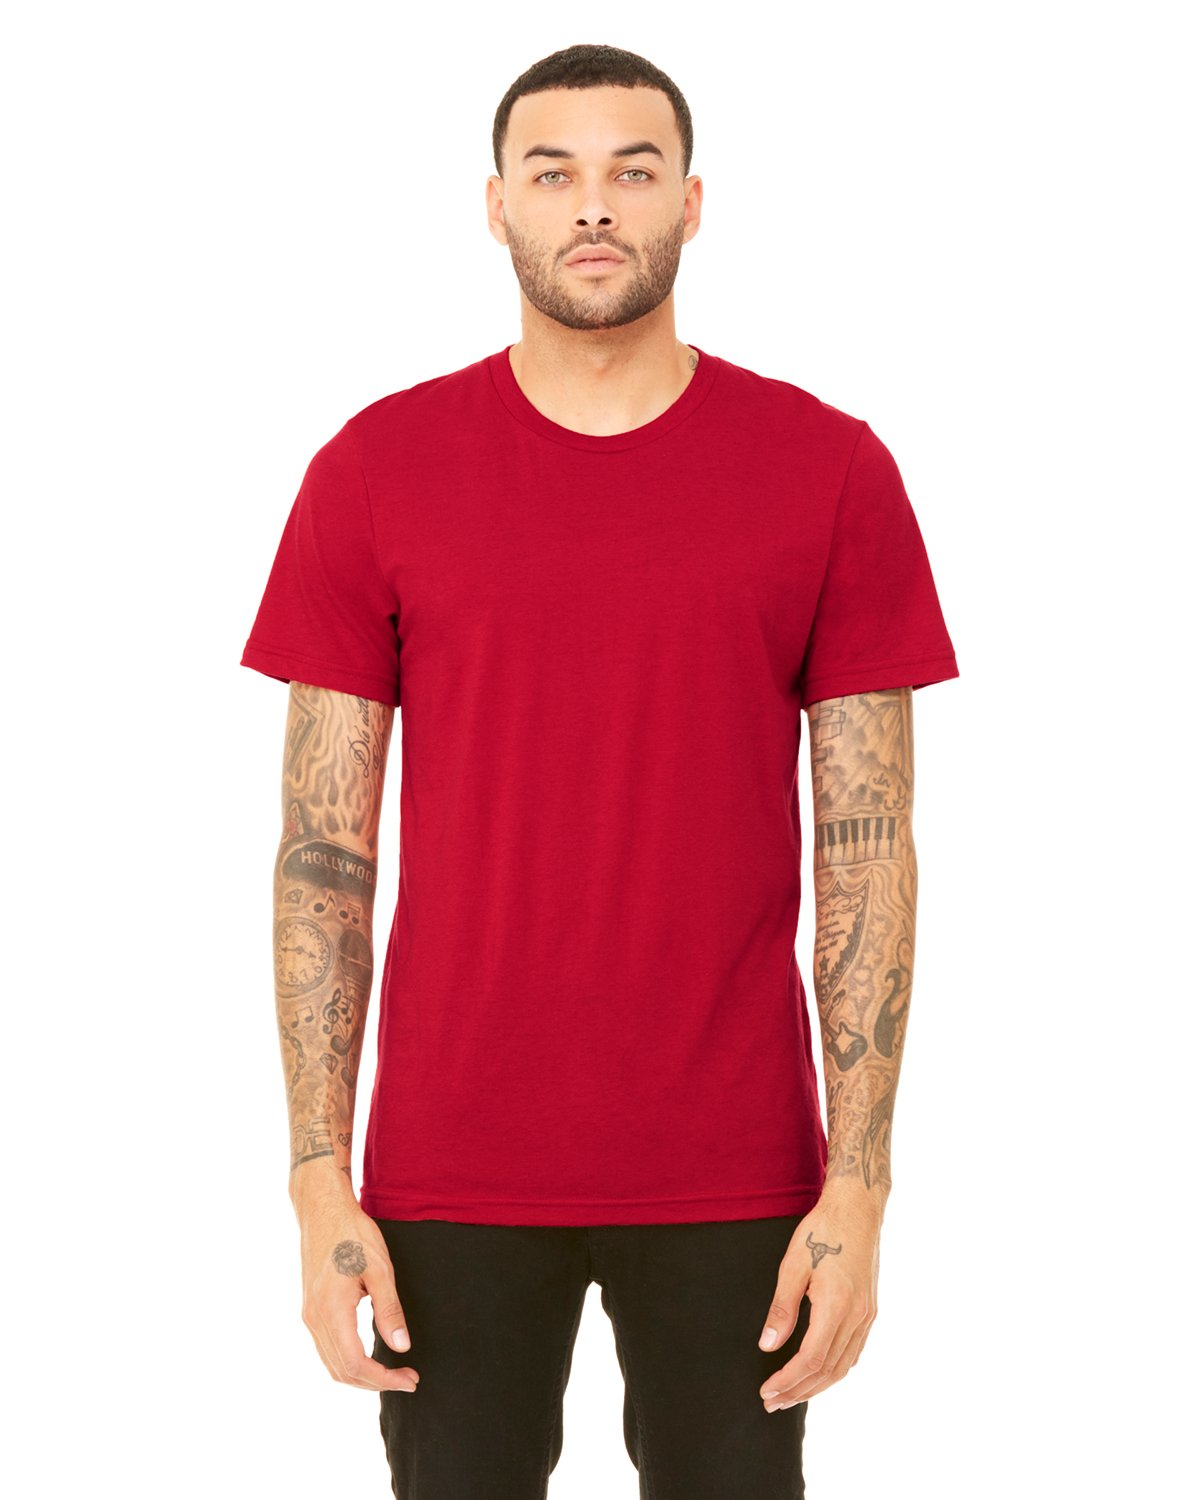 15cf8e95 Bella + Canvas Unisex Triblend Short-Sleeve T-Shirt in Solid Red Tribln,  add a custom design Backpacks Bags   Lead Apparel